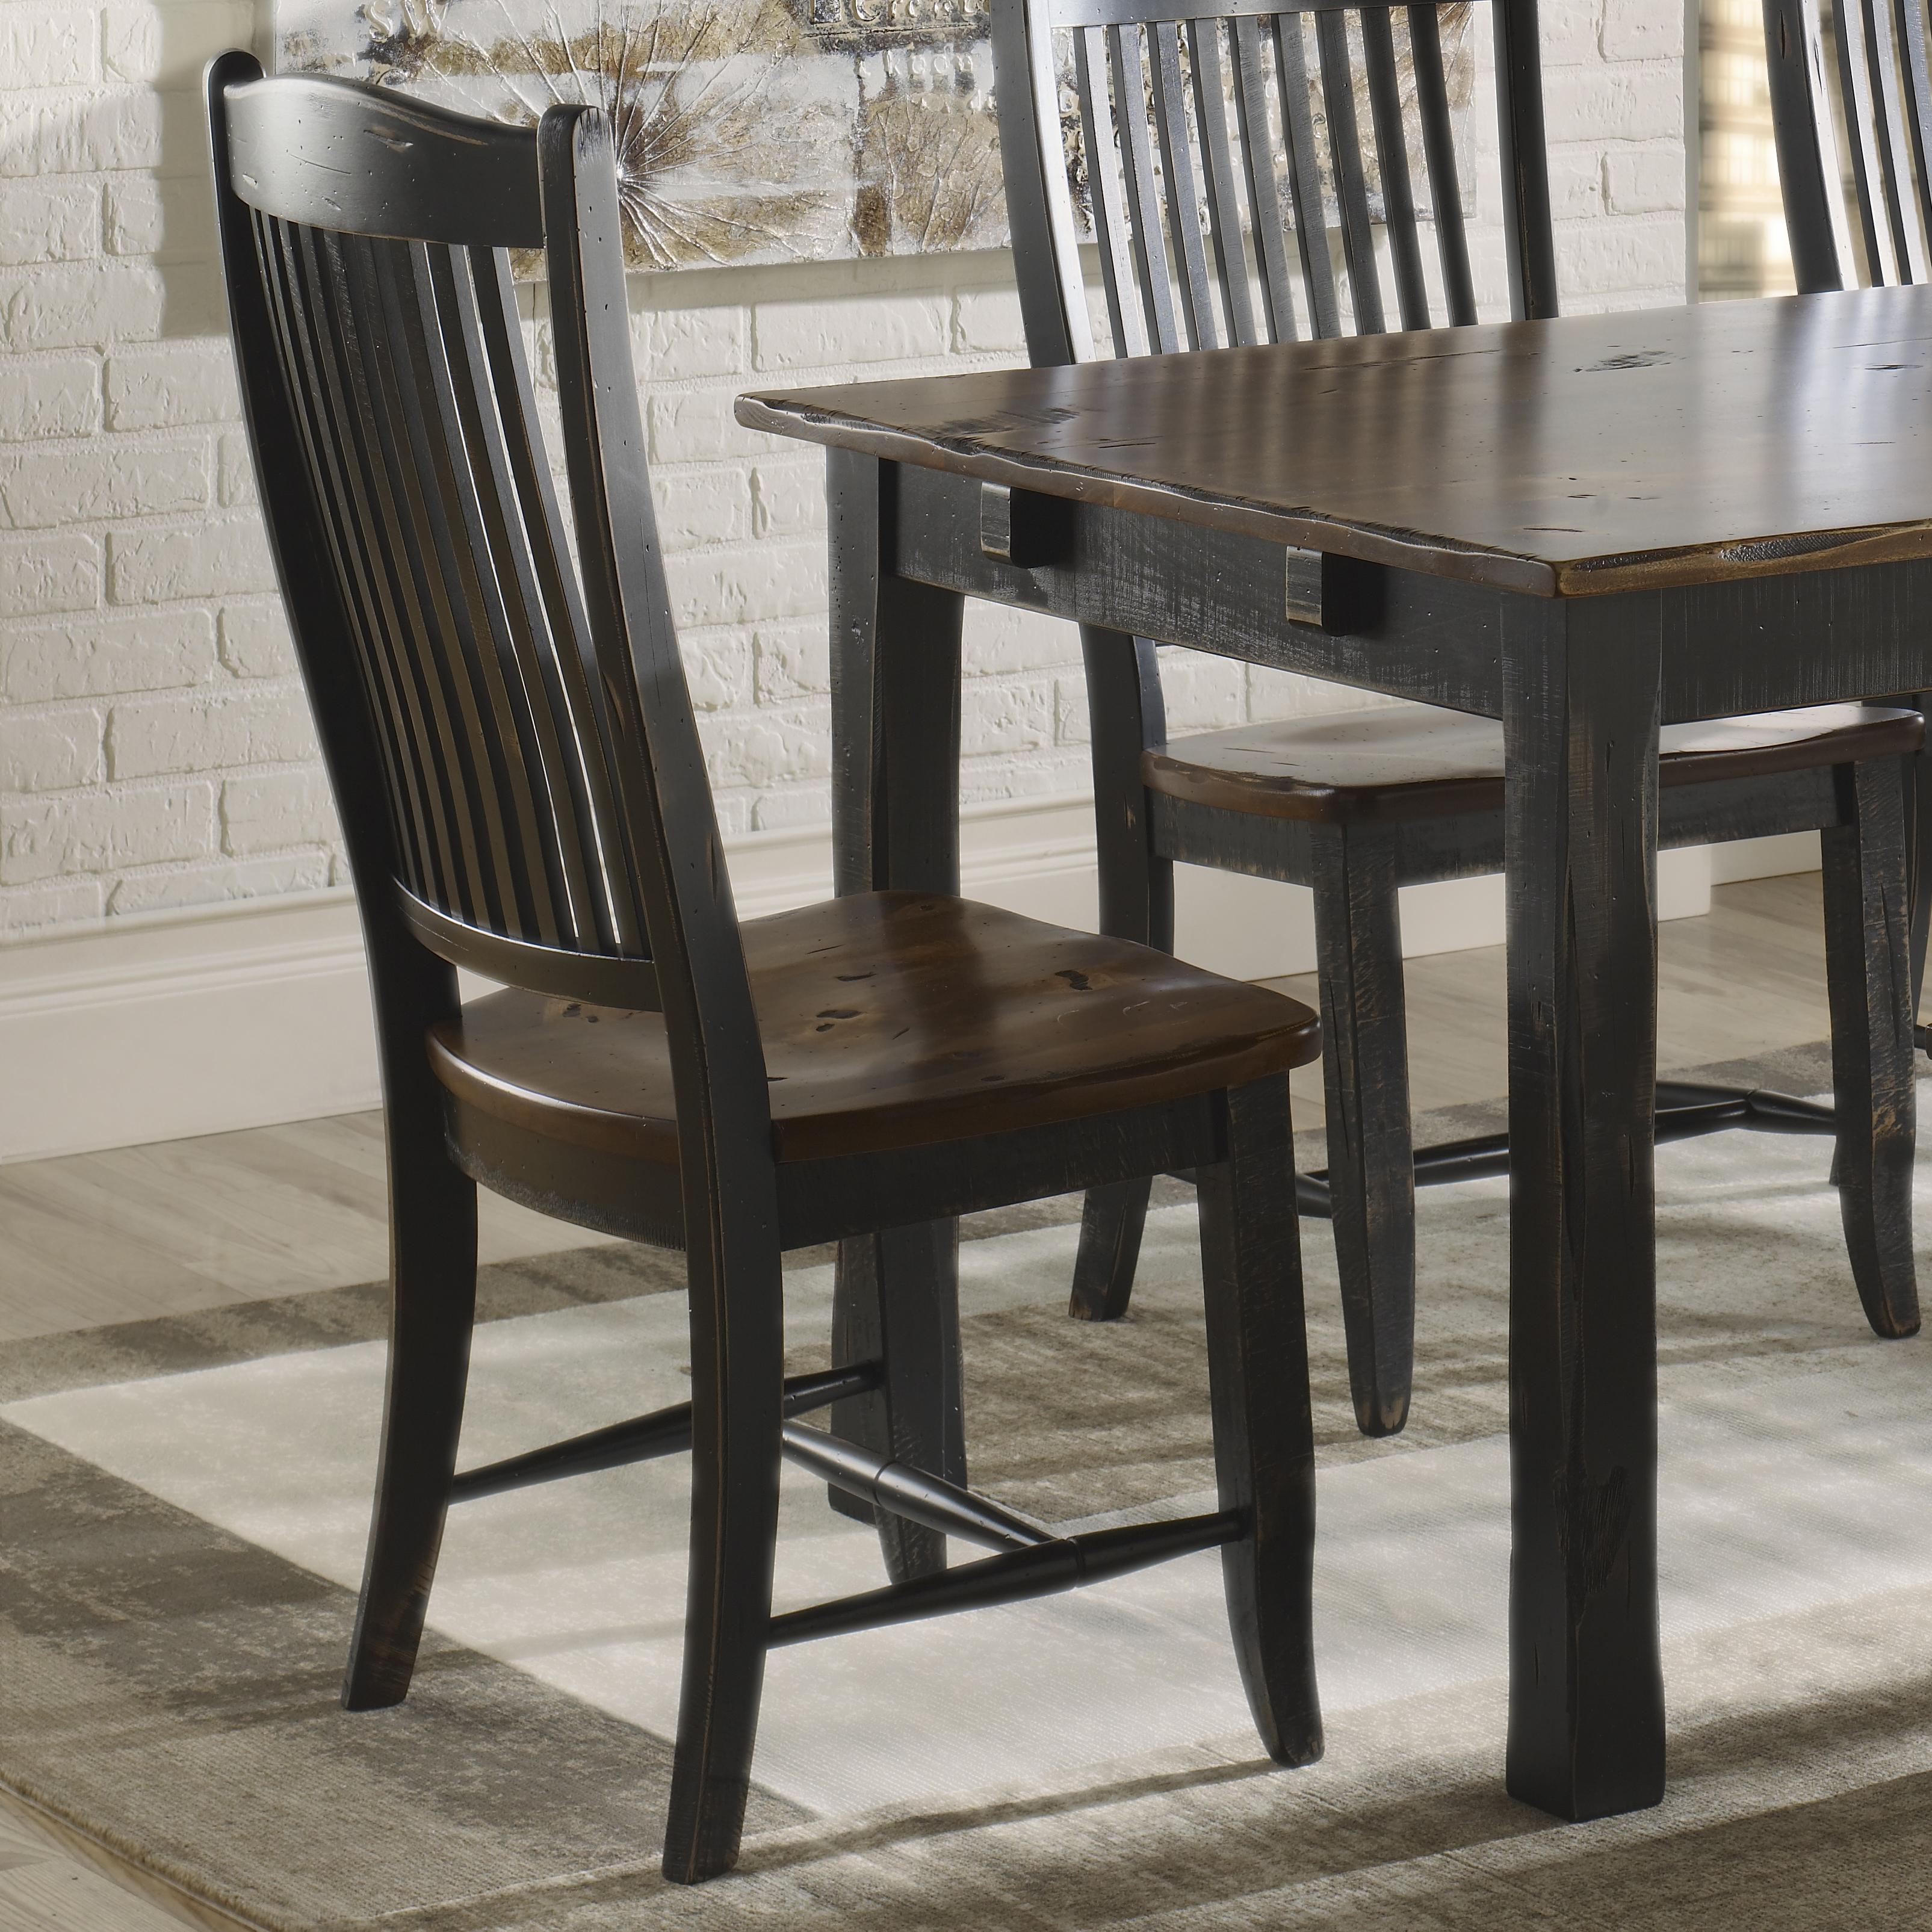 Champlain - Custom Dining <b>Customizable</b> Side Chair by Canadel at Bennett's Furniture and Mattresses